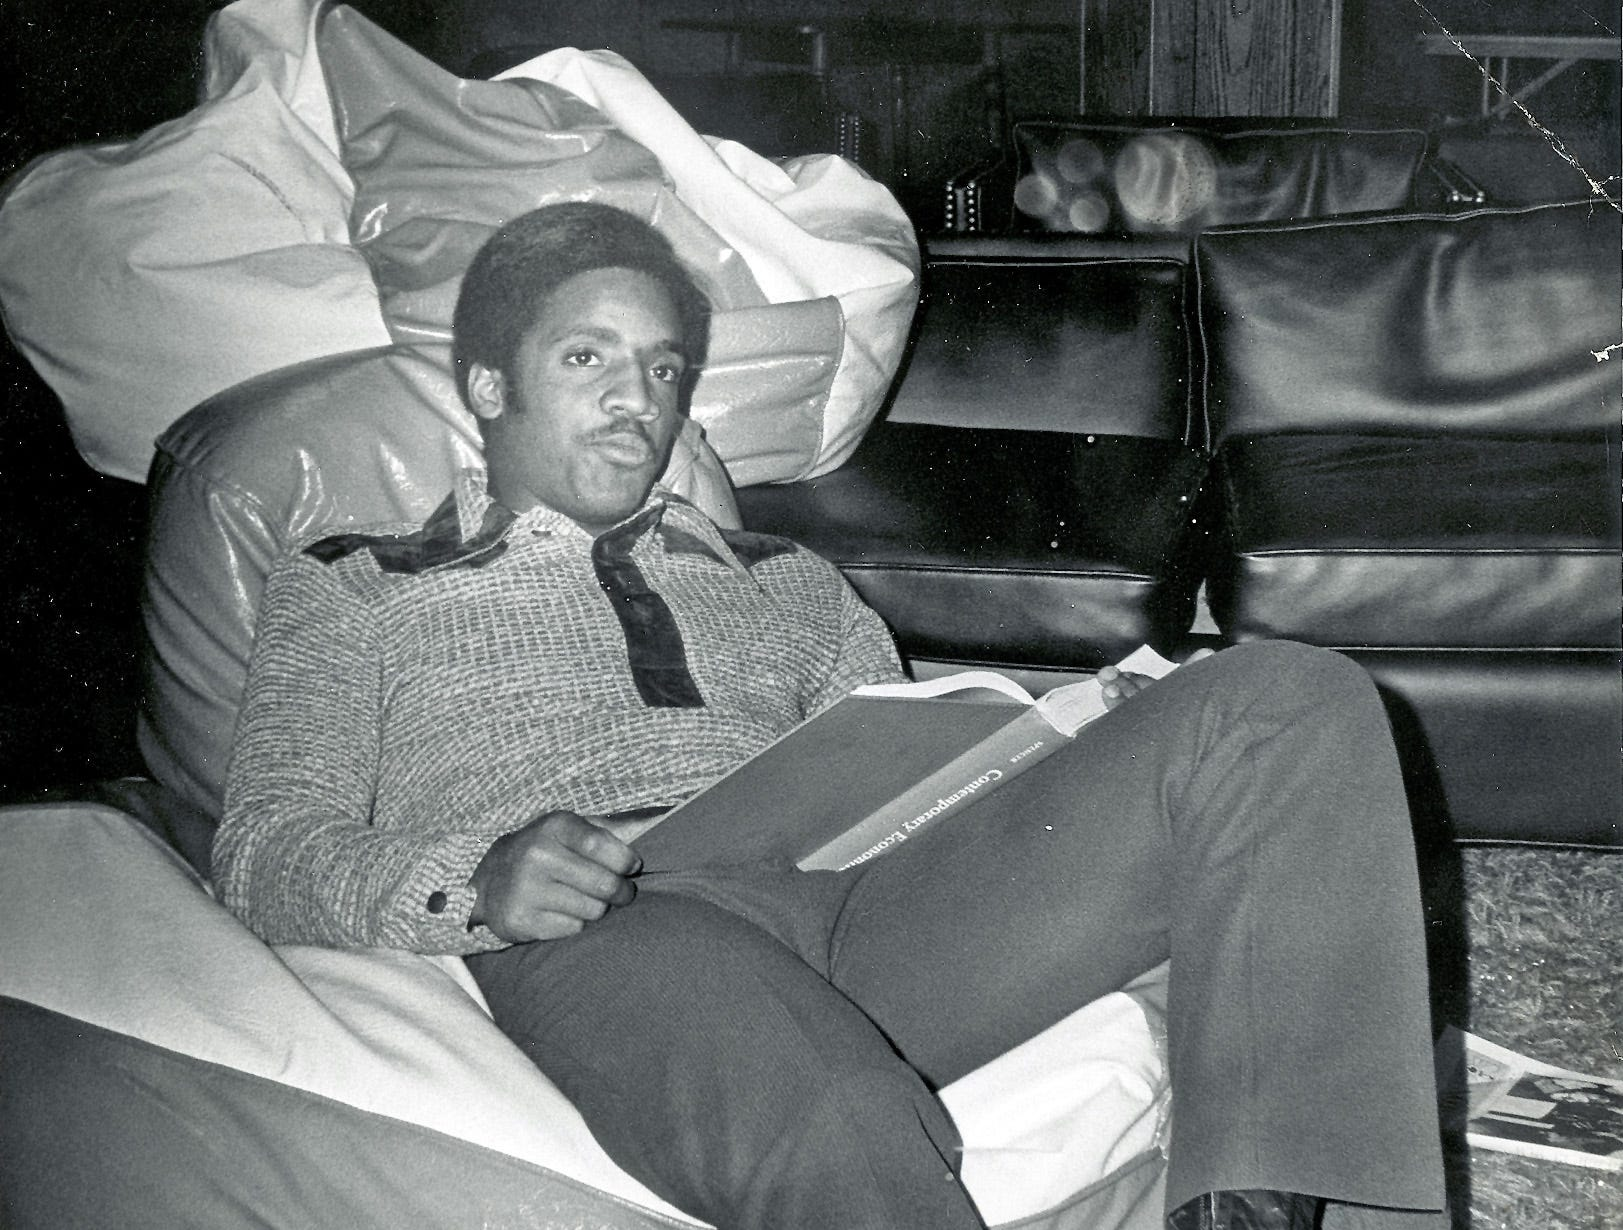 University of Tennessee quarterback Condredge Holloway relaxes in this Knoxville News Sentinel file photo taken by Jack Kirkland on Dec. 4, 1972.